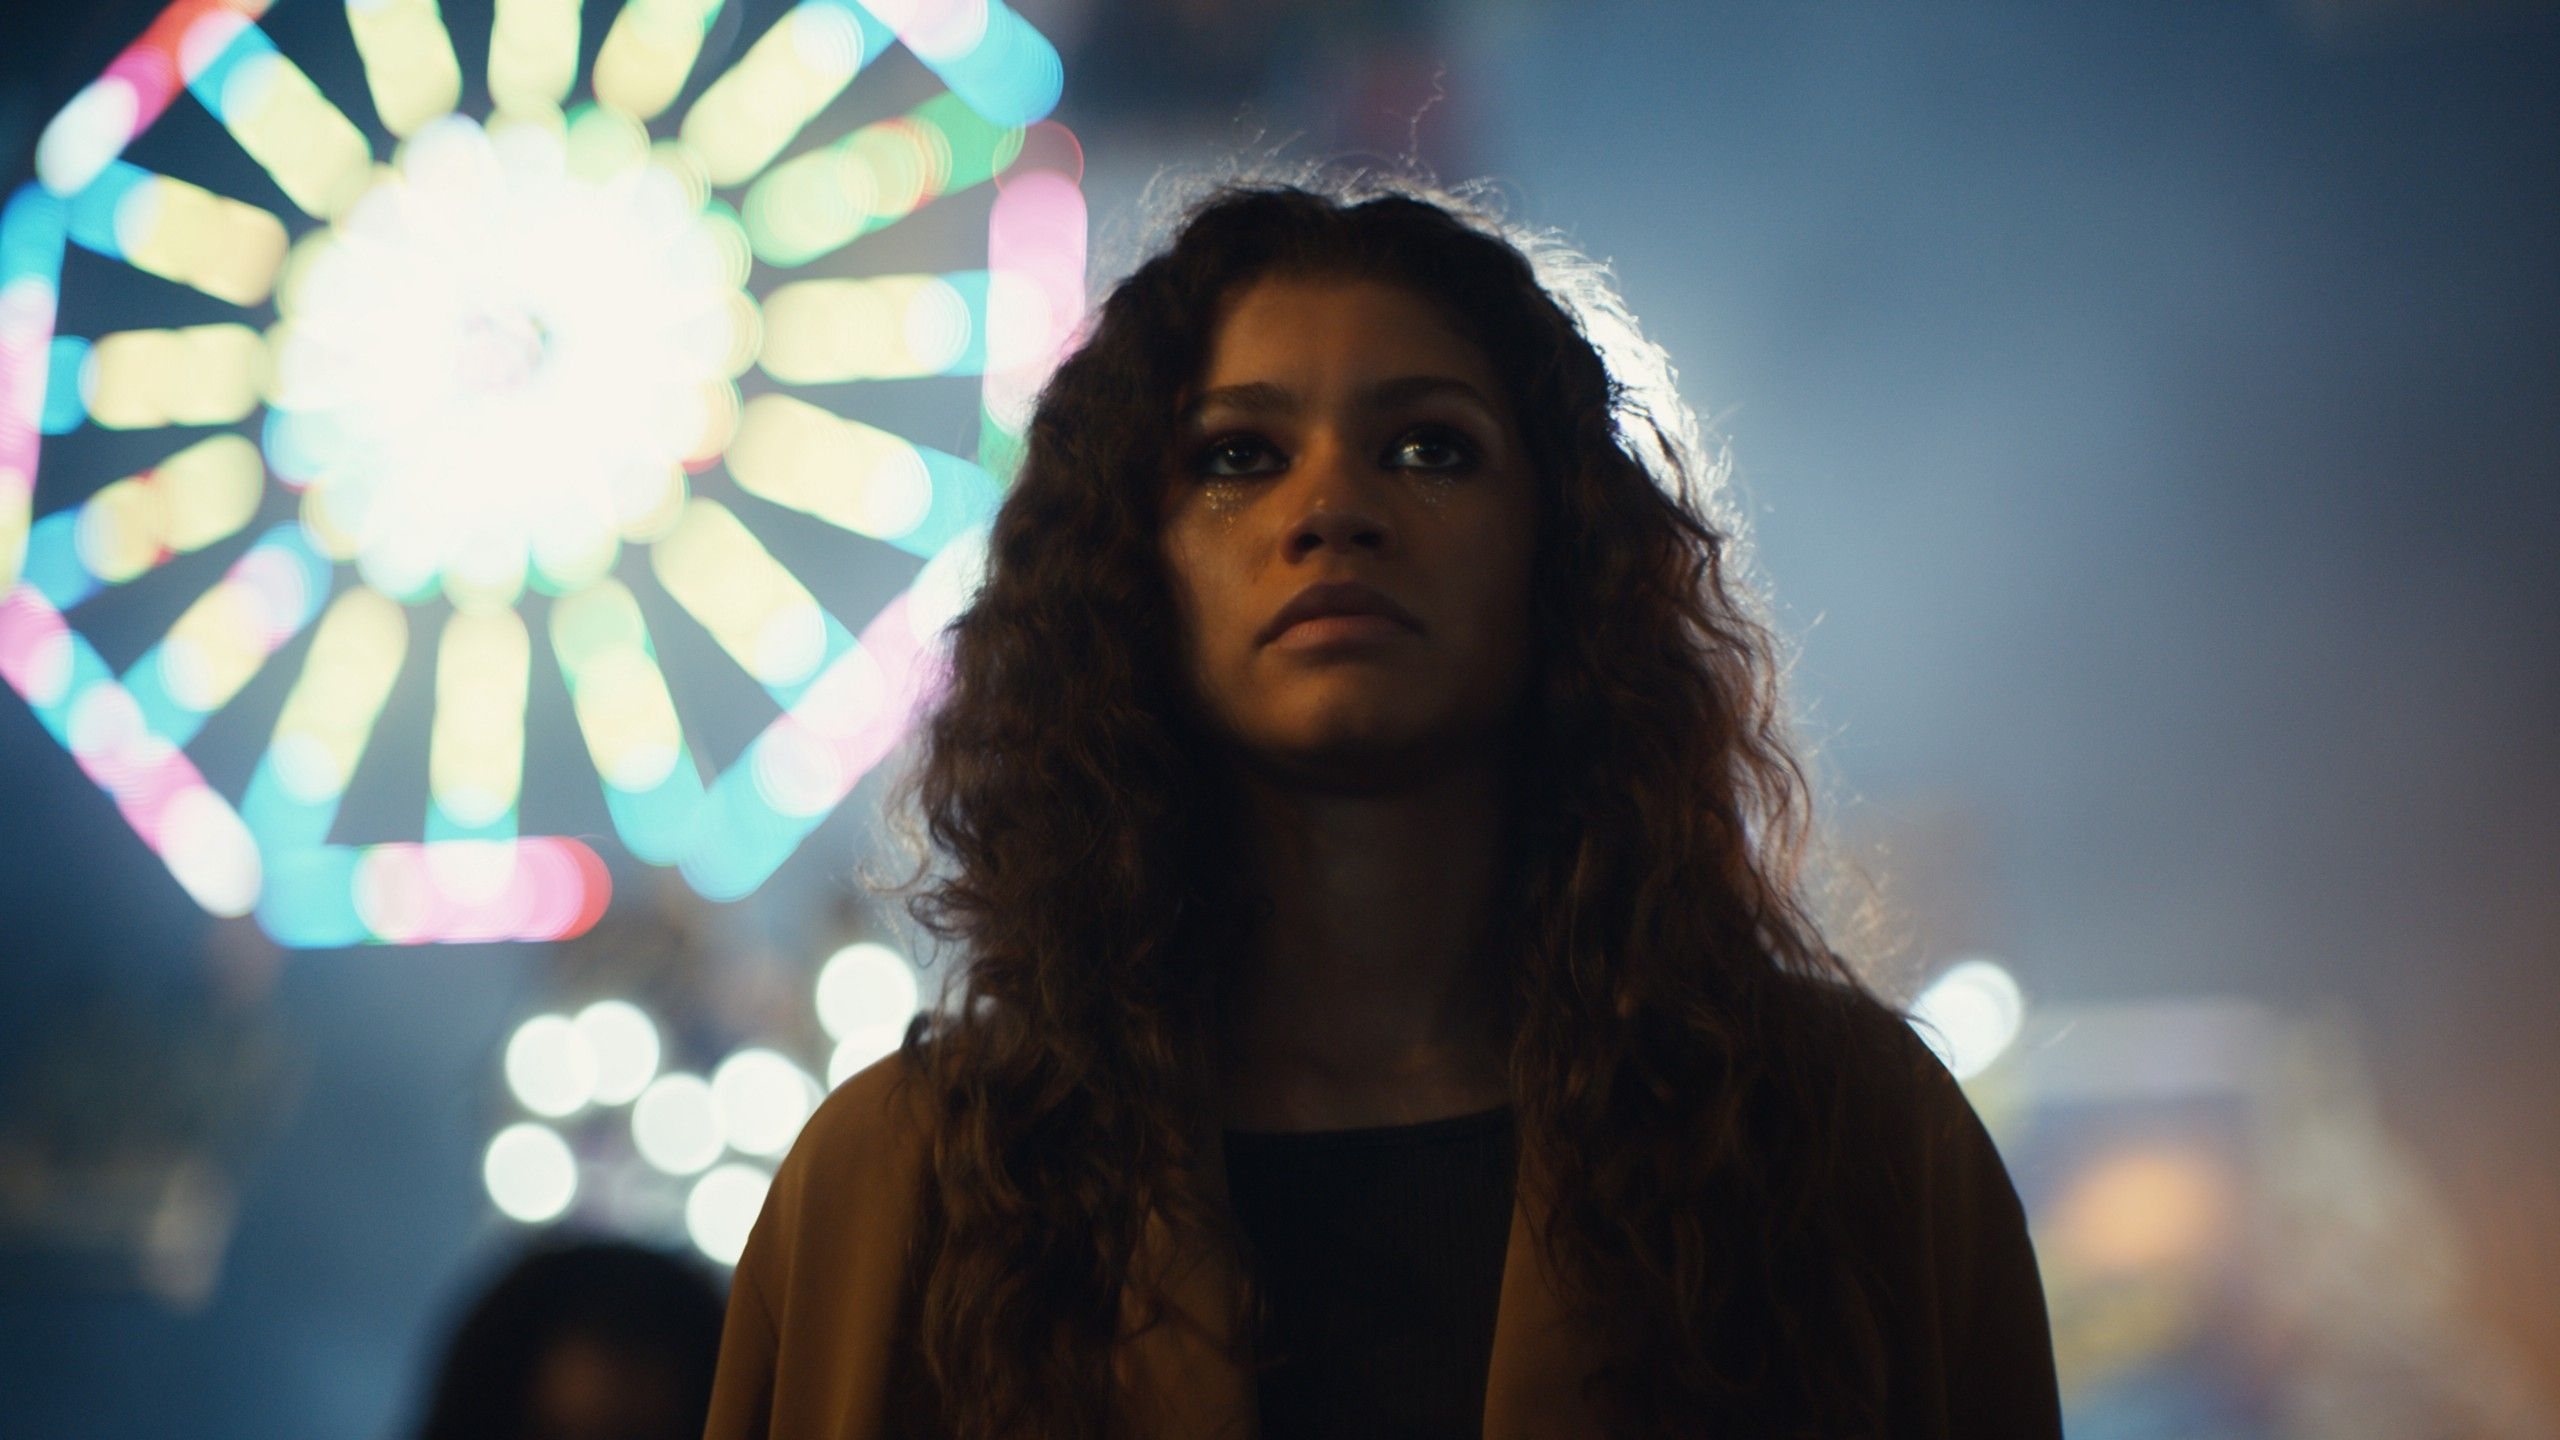 They Mentioned 'Narcan' on HBO's Euphoria—What Is That?